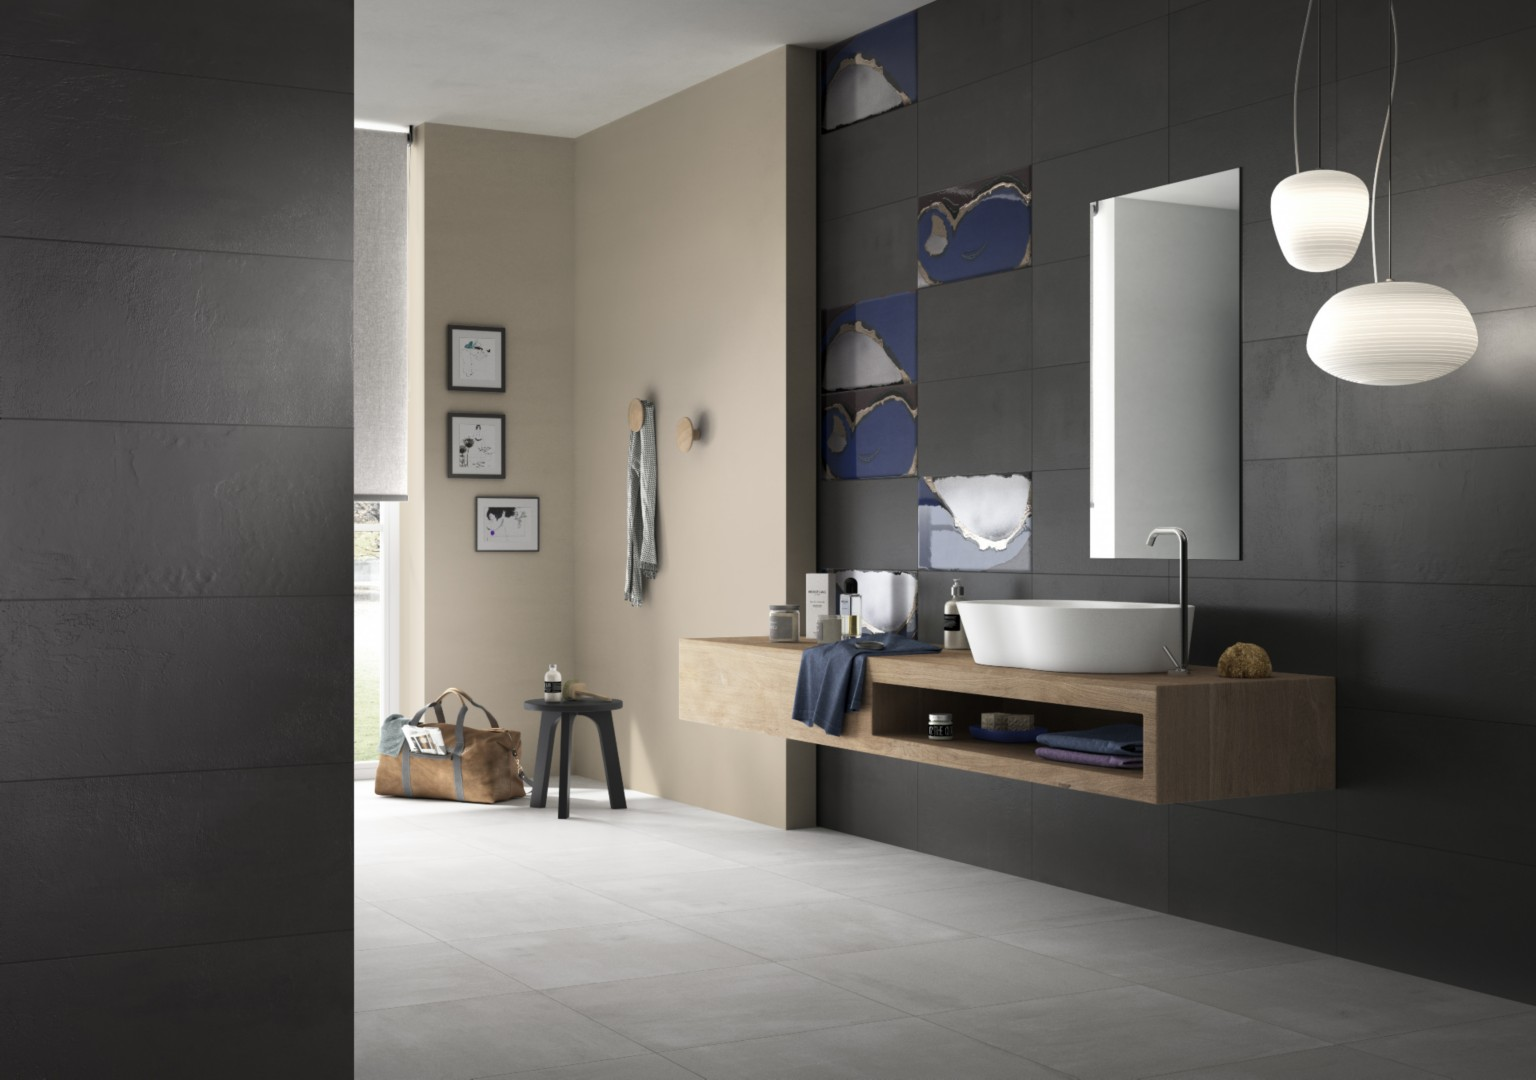 salles de bain la construction lyonnaise. Black Bedroom Furniture Sets. Home Design Ideas